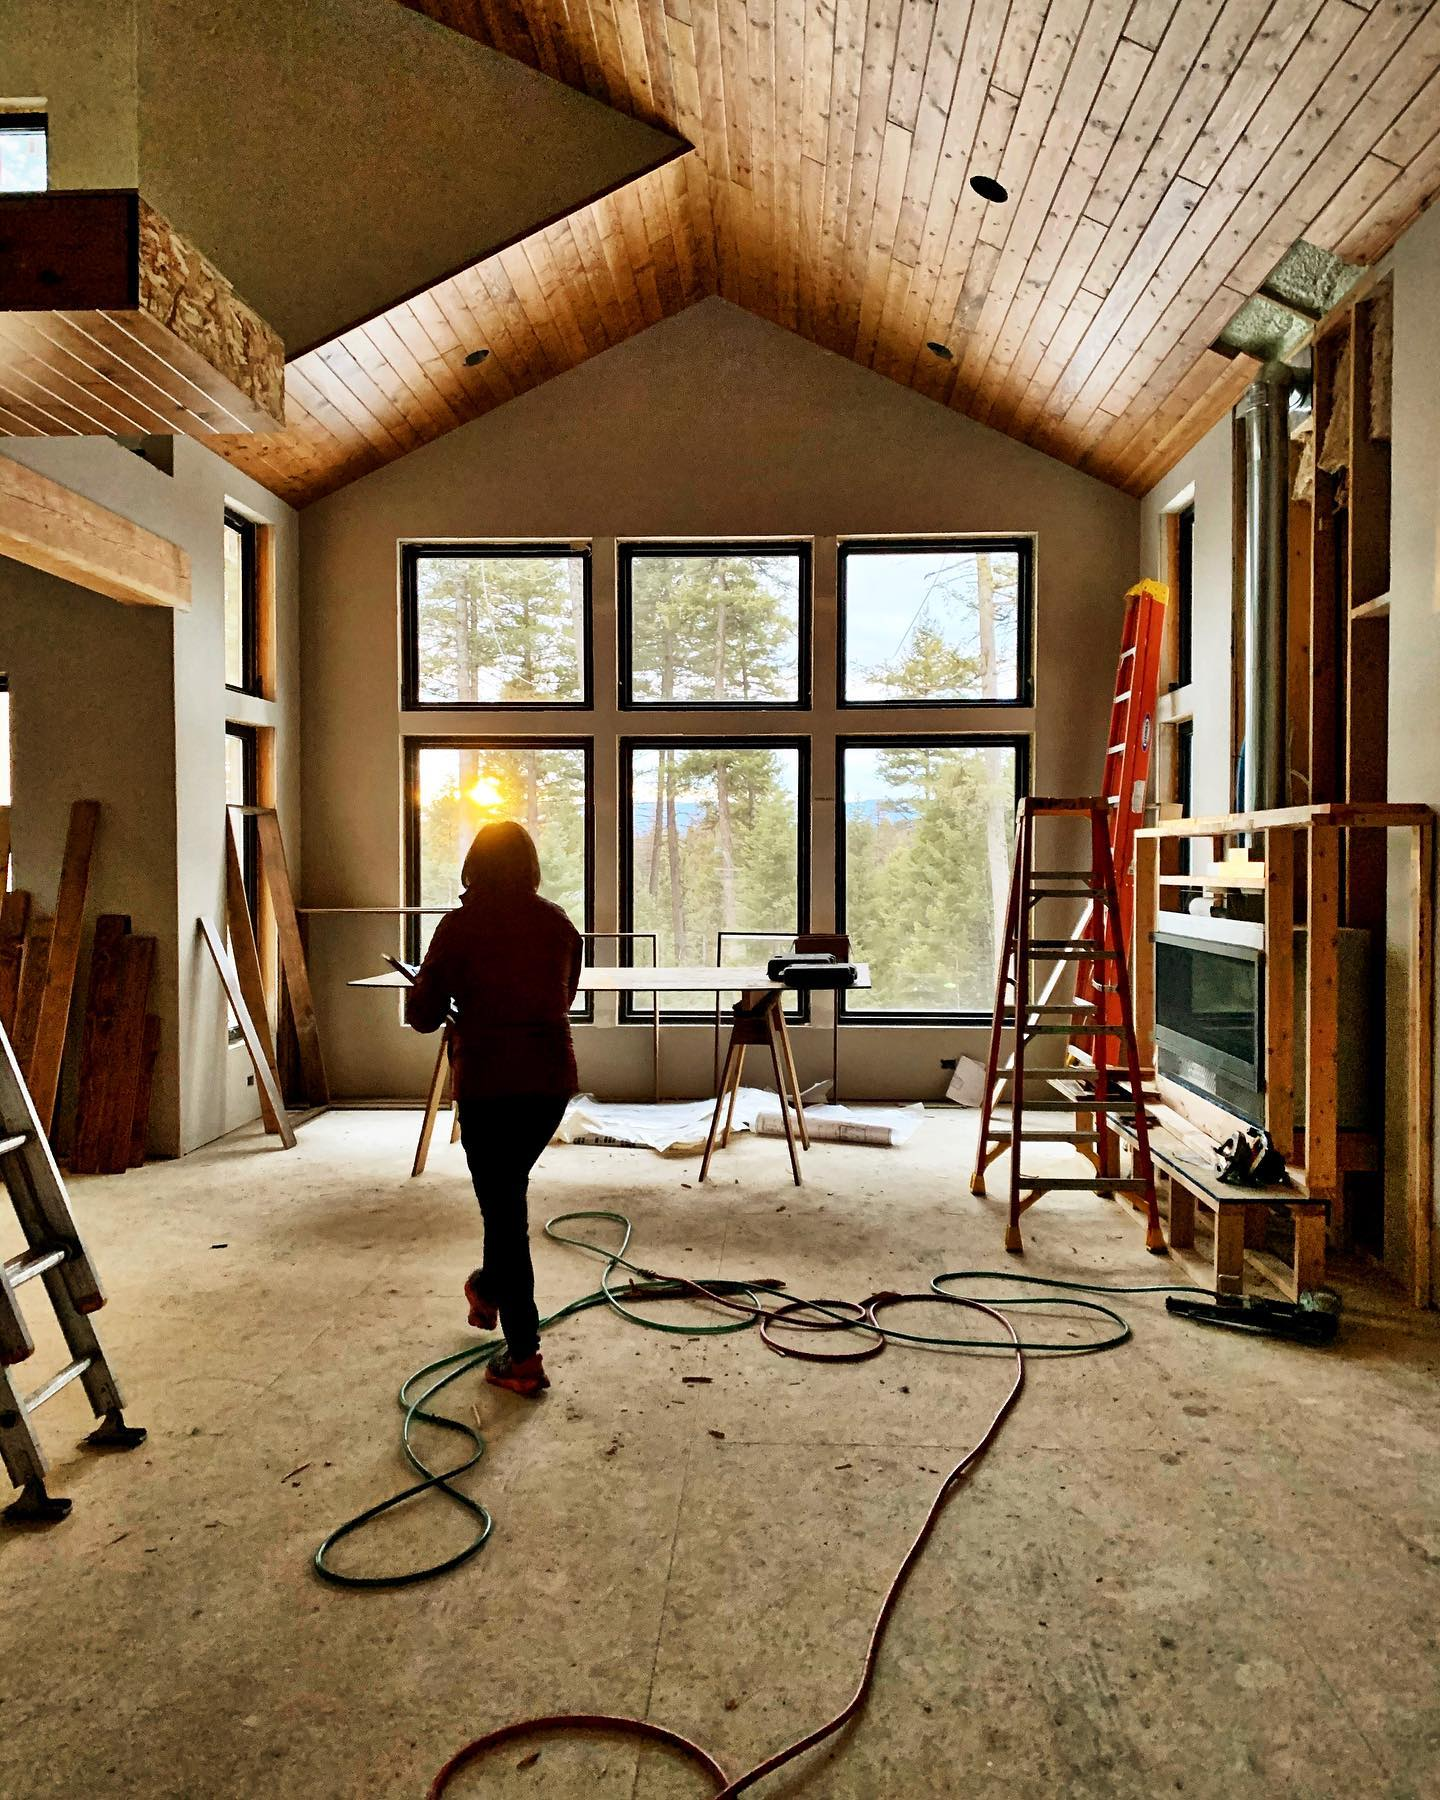 The feeling of watching the home owner see a sunset out of these windows!!! whitefish custom home builder